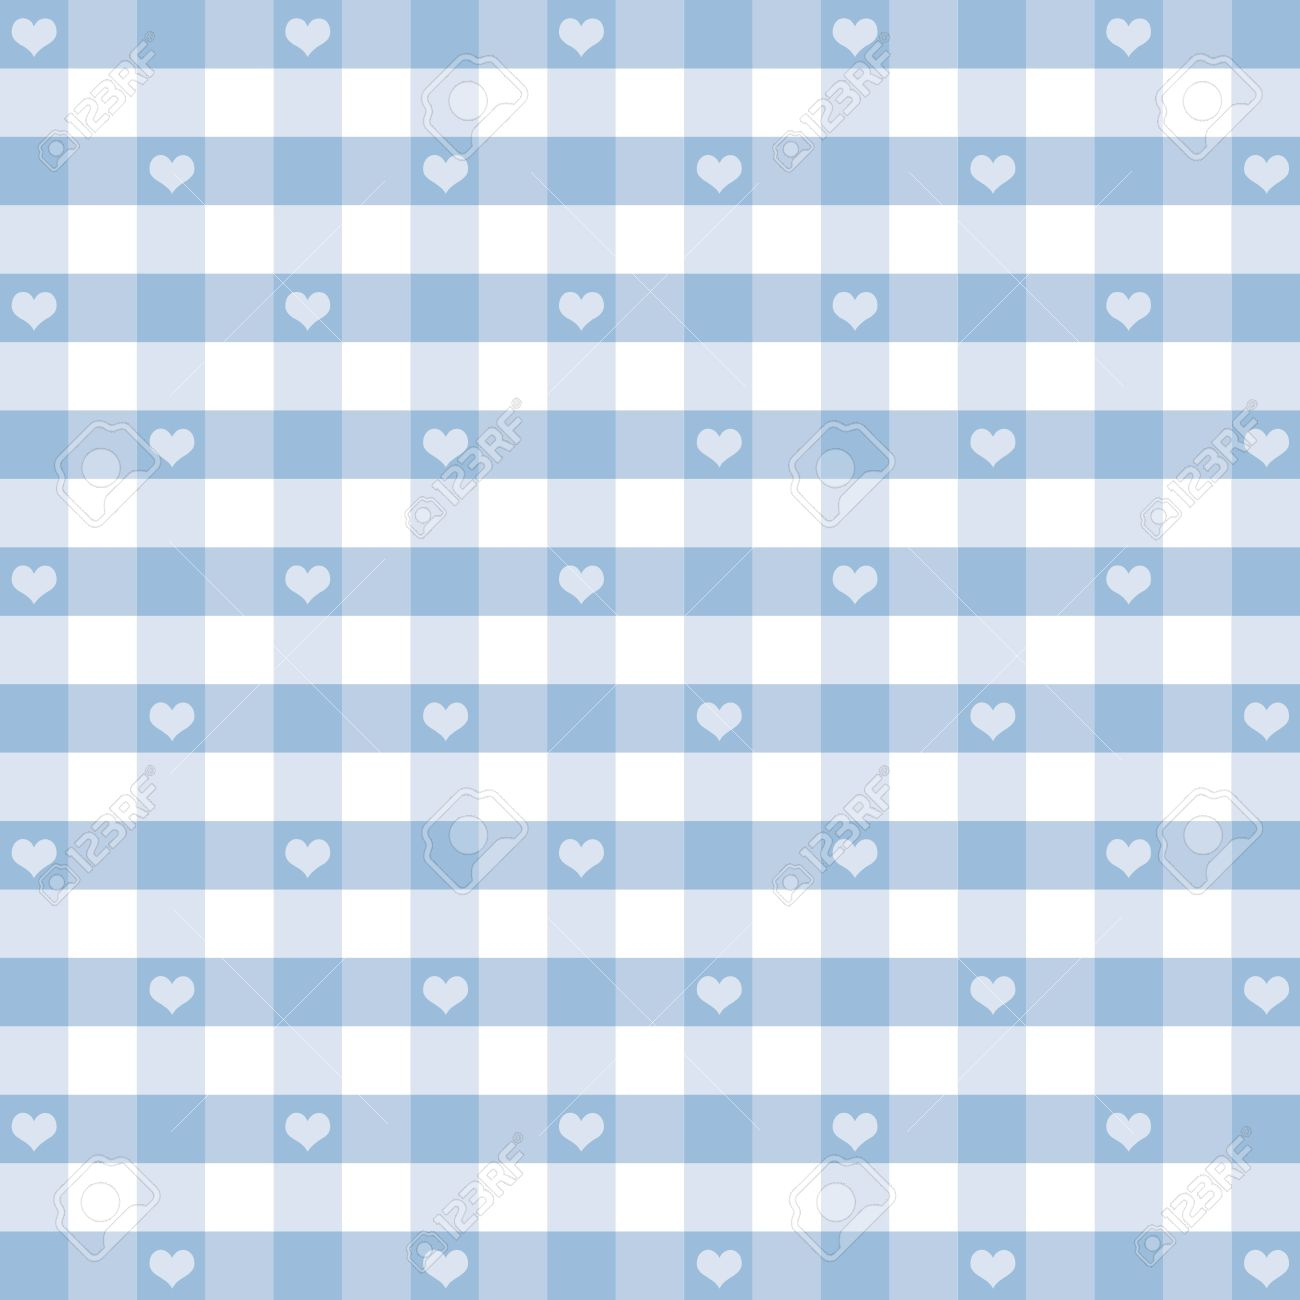 Seamless Gingham Pattern with Hearts, Pastel Blue, for scrapbooks, albums, baby books, decorating. Stock Vector - 12136857